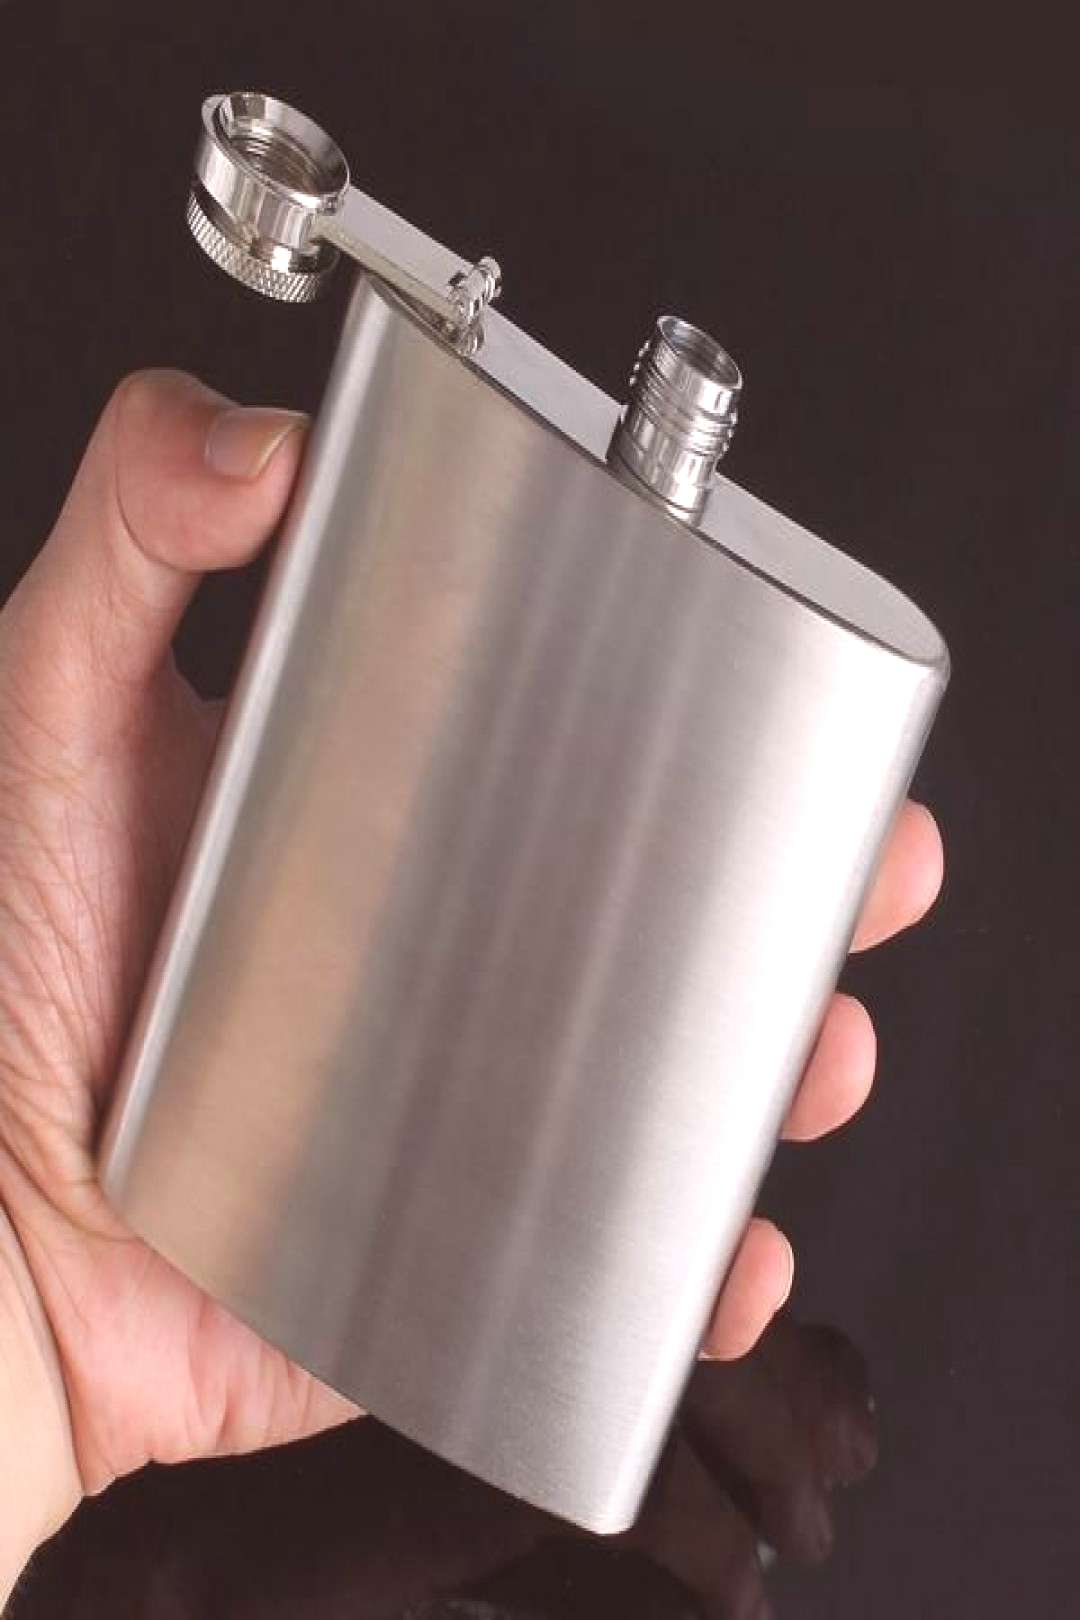 7oz Stainless Liquor flagon Retro Rum Whiskey Alcohol Pocket Flask with Funnel - -